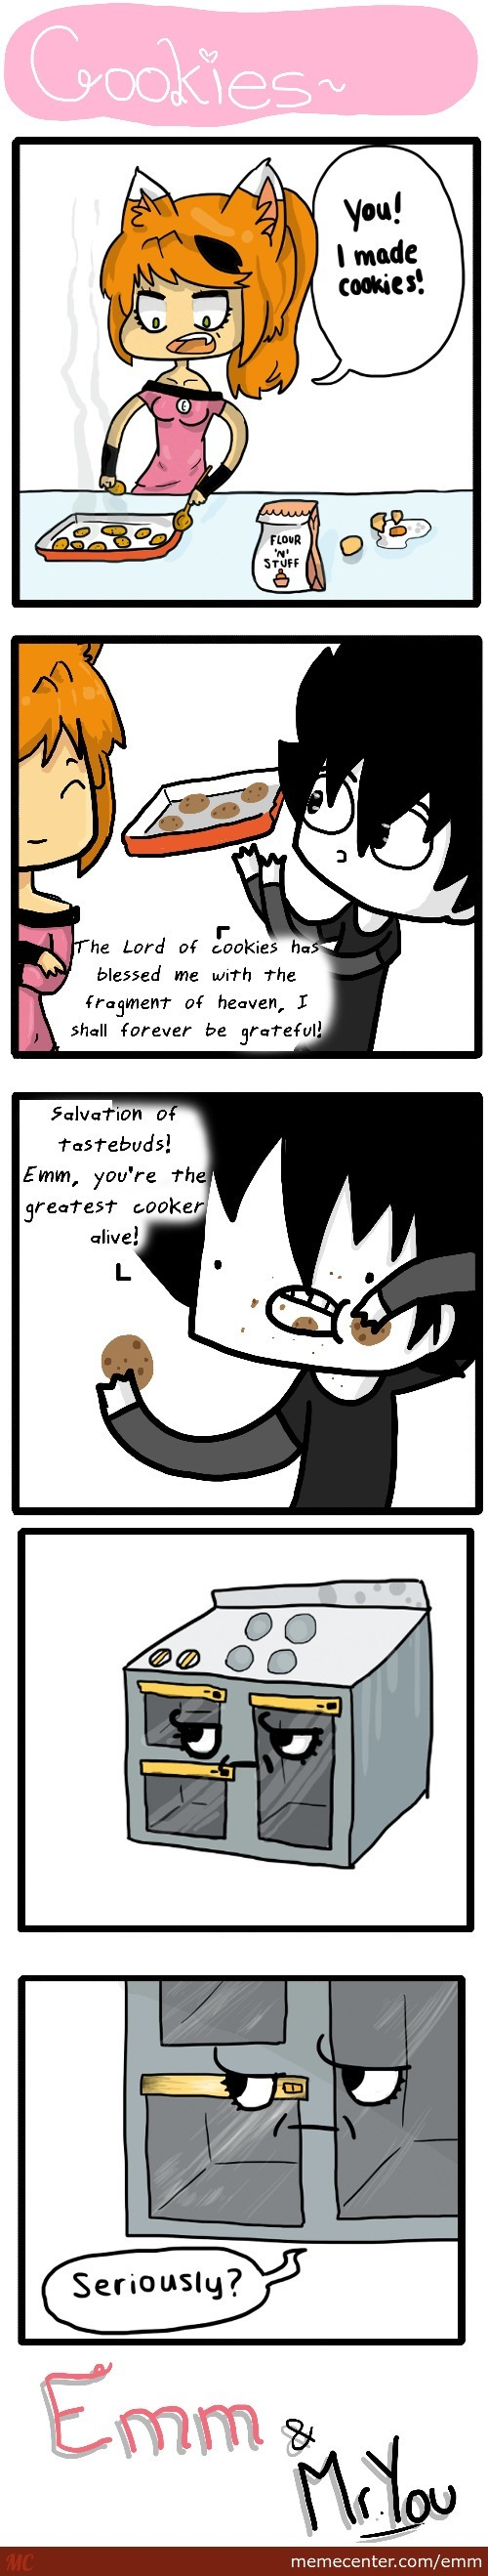 Cookies! (Ft. Mr You)